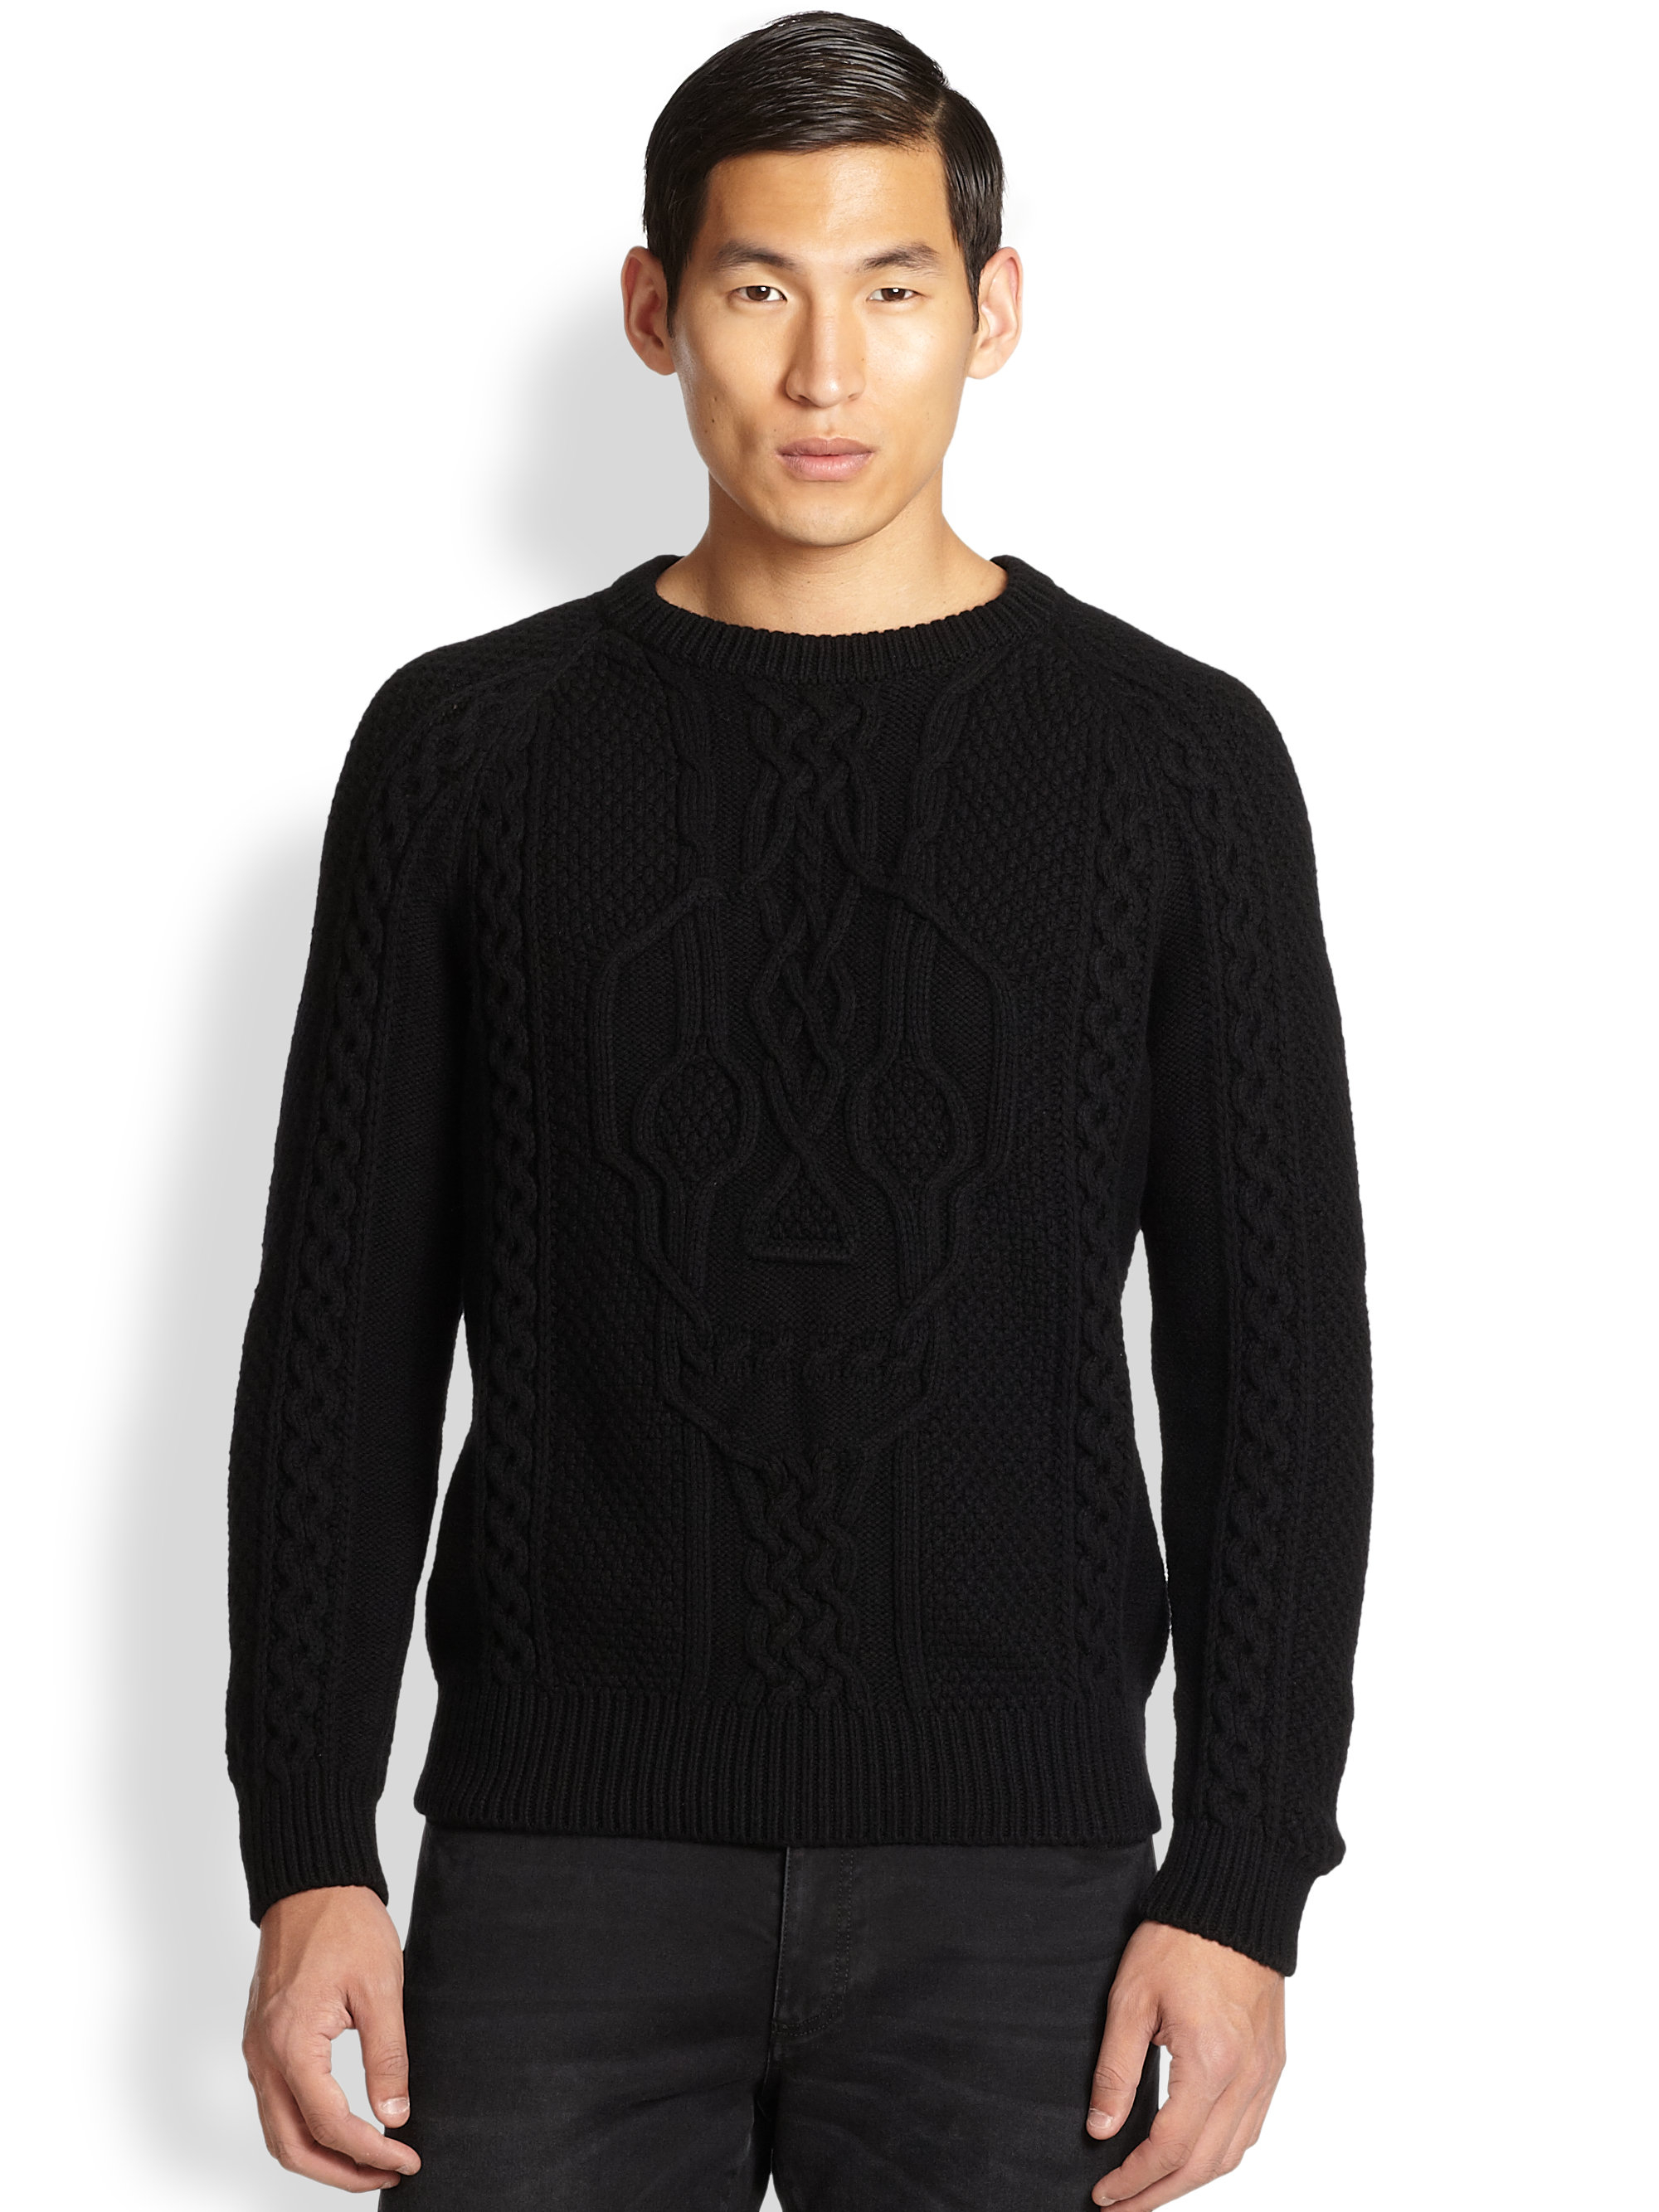 Lyst Alexander Mcqueen Skull Cable Knit Sweater In Black For Men